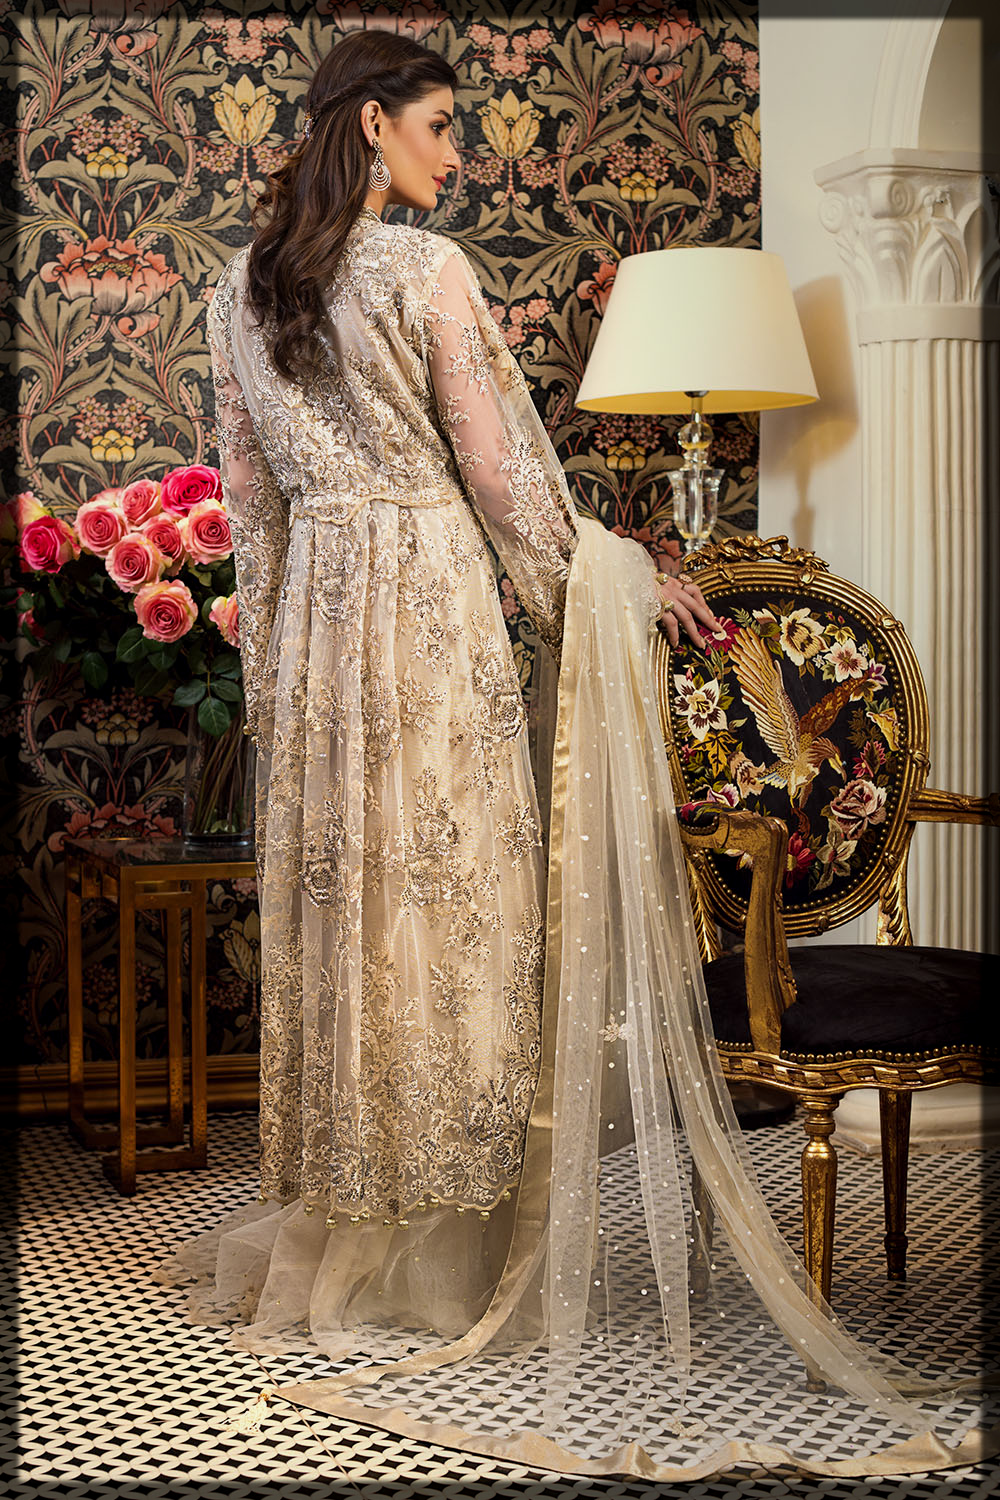 dazzling Gul Ahmed Festive Eid Collection for women